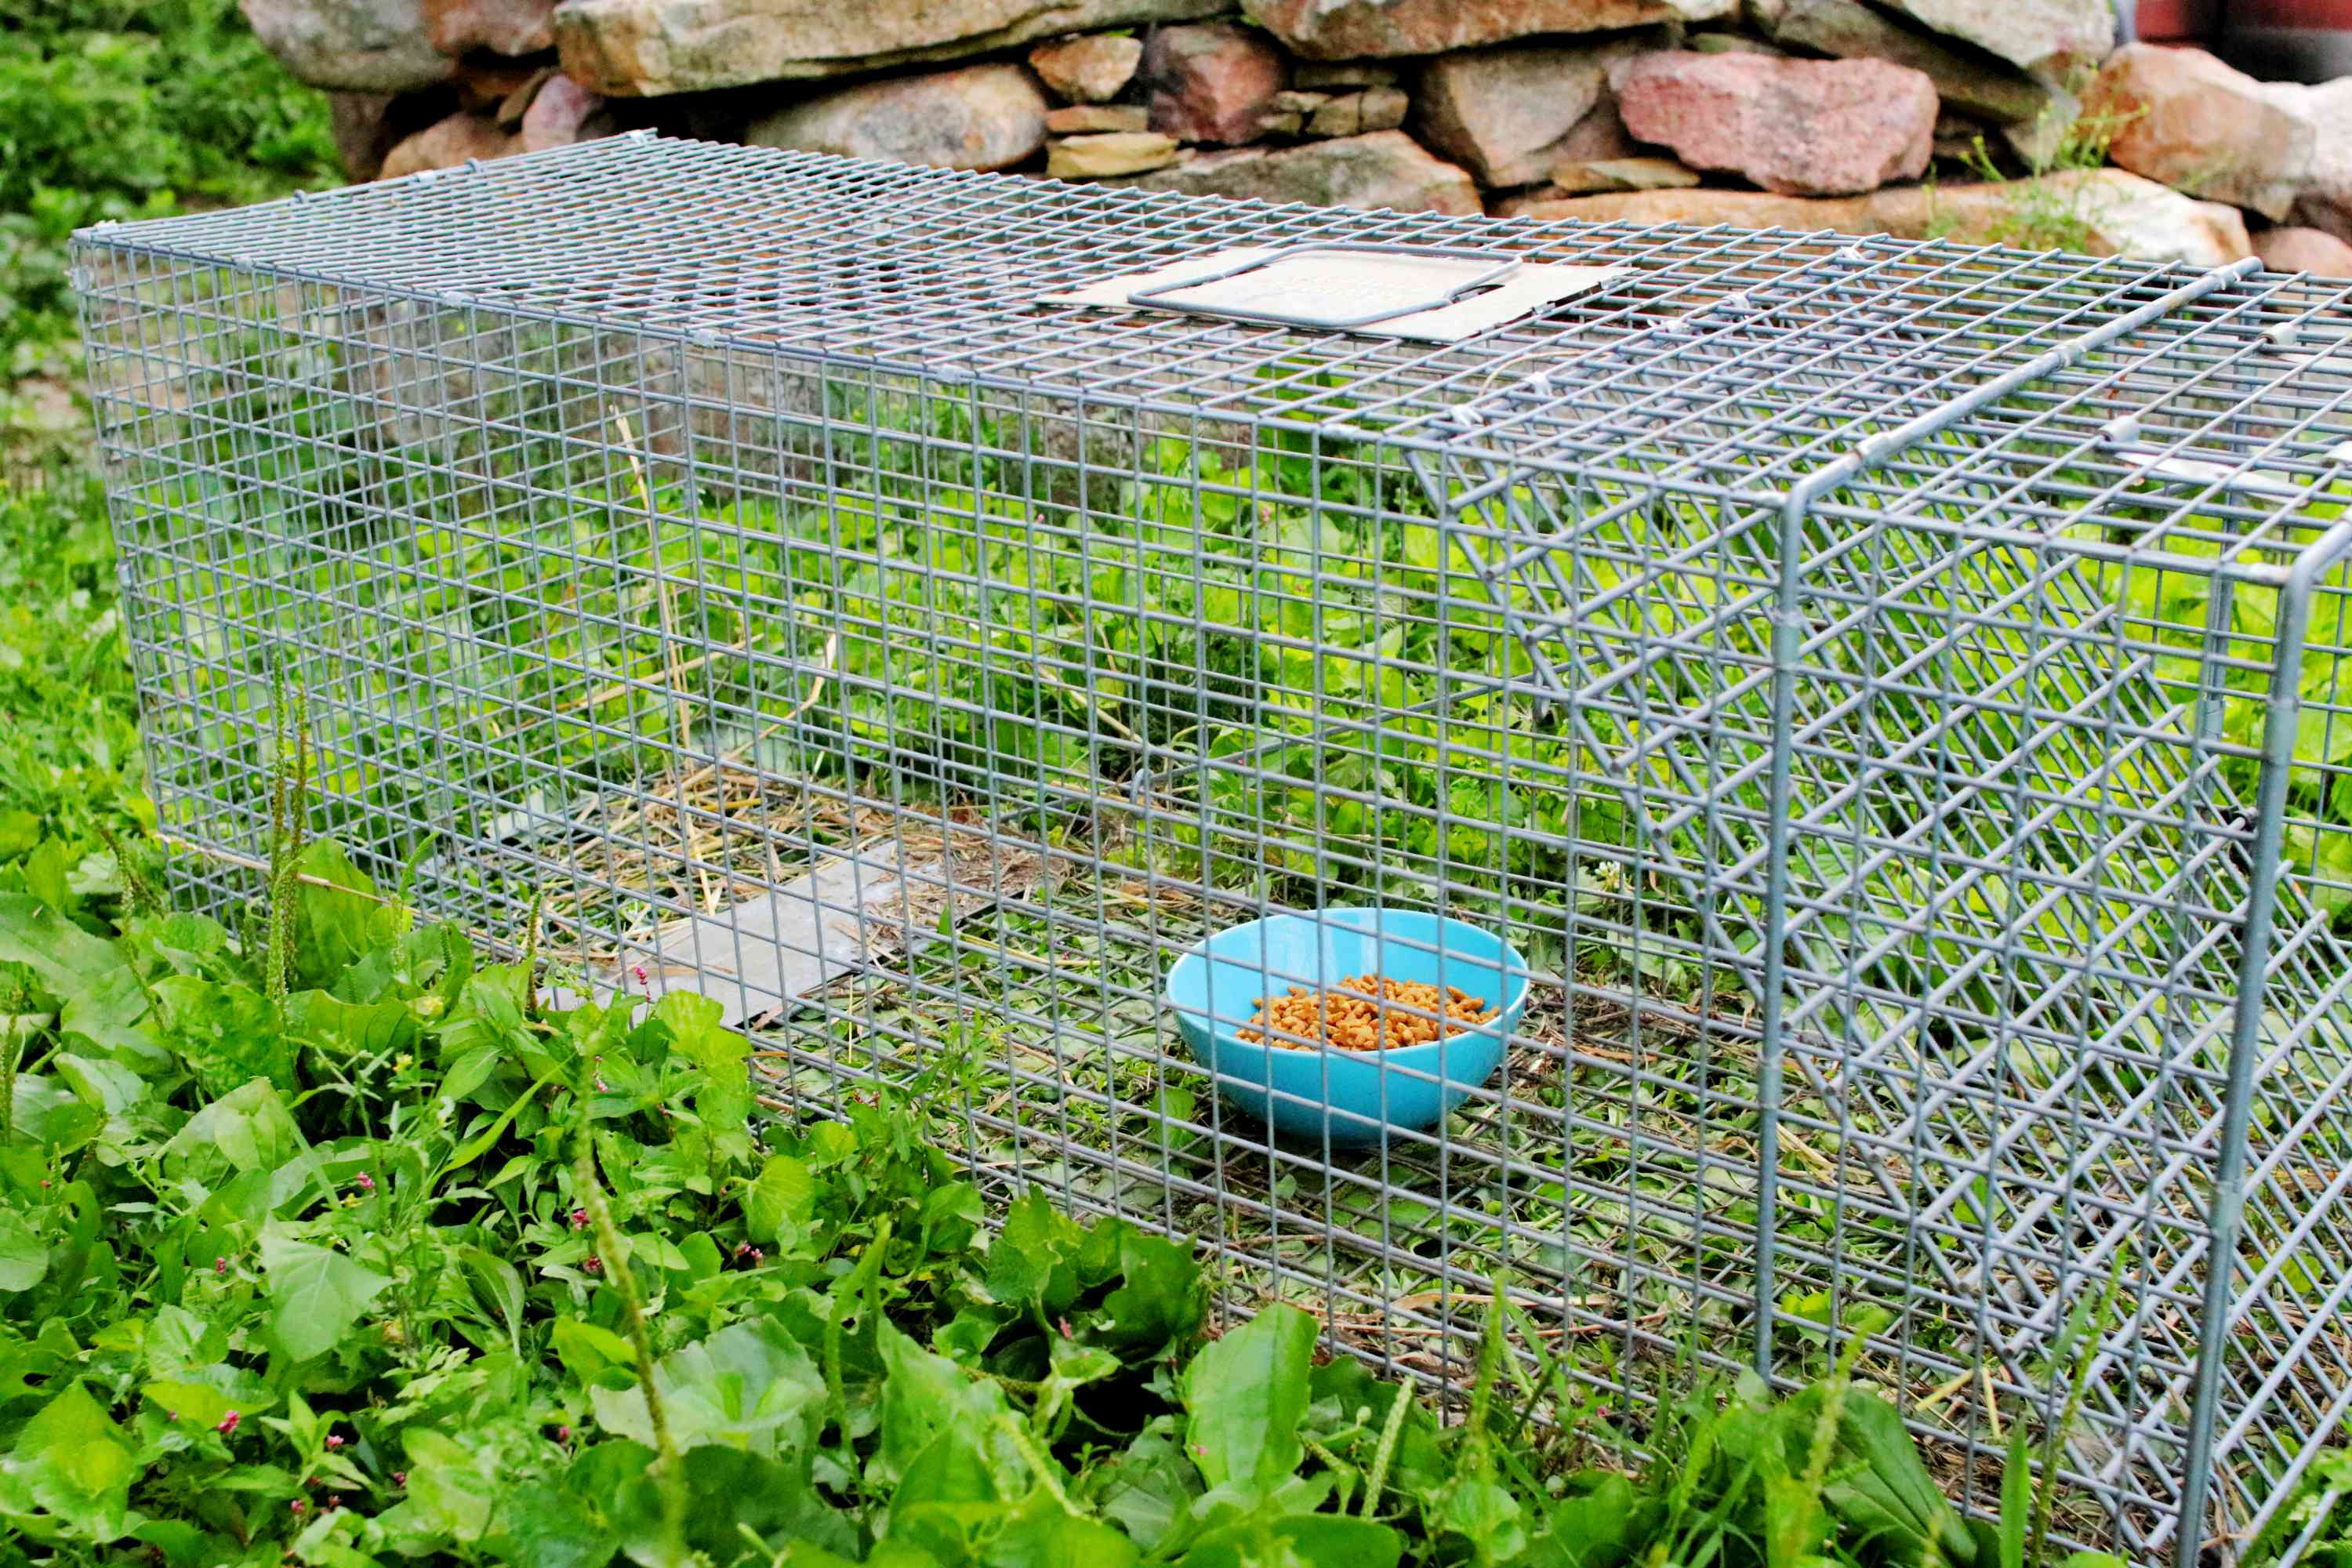 Spring-loaded metal humane trap to catch feral cats with blue bowl of cat food